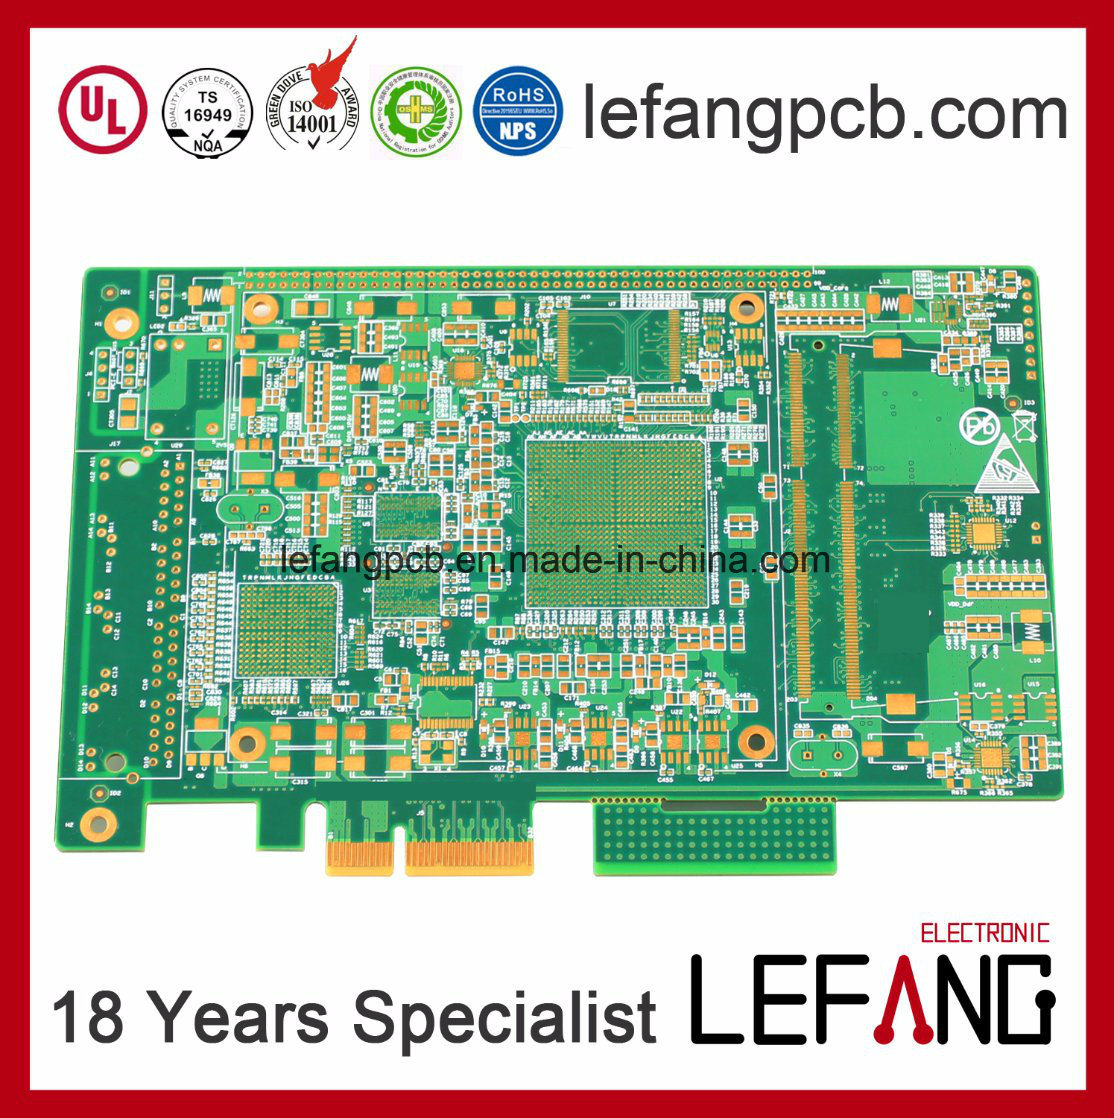 China Impedance Pcb Manufacturers Suppliers Made Fiberglass Circuit Board